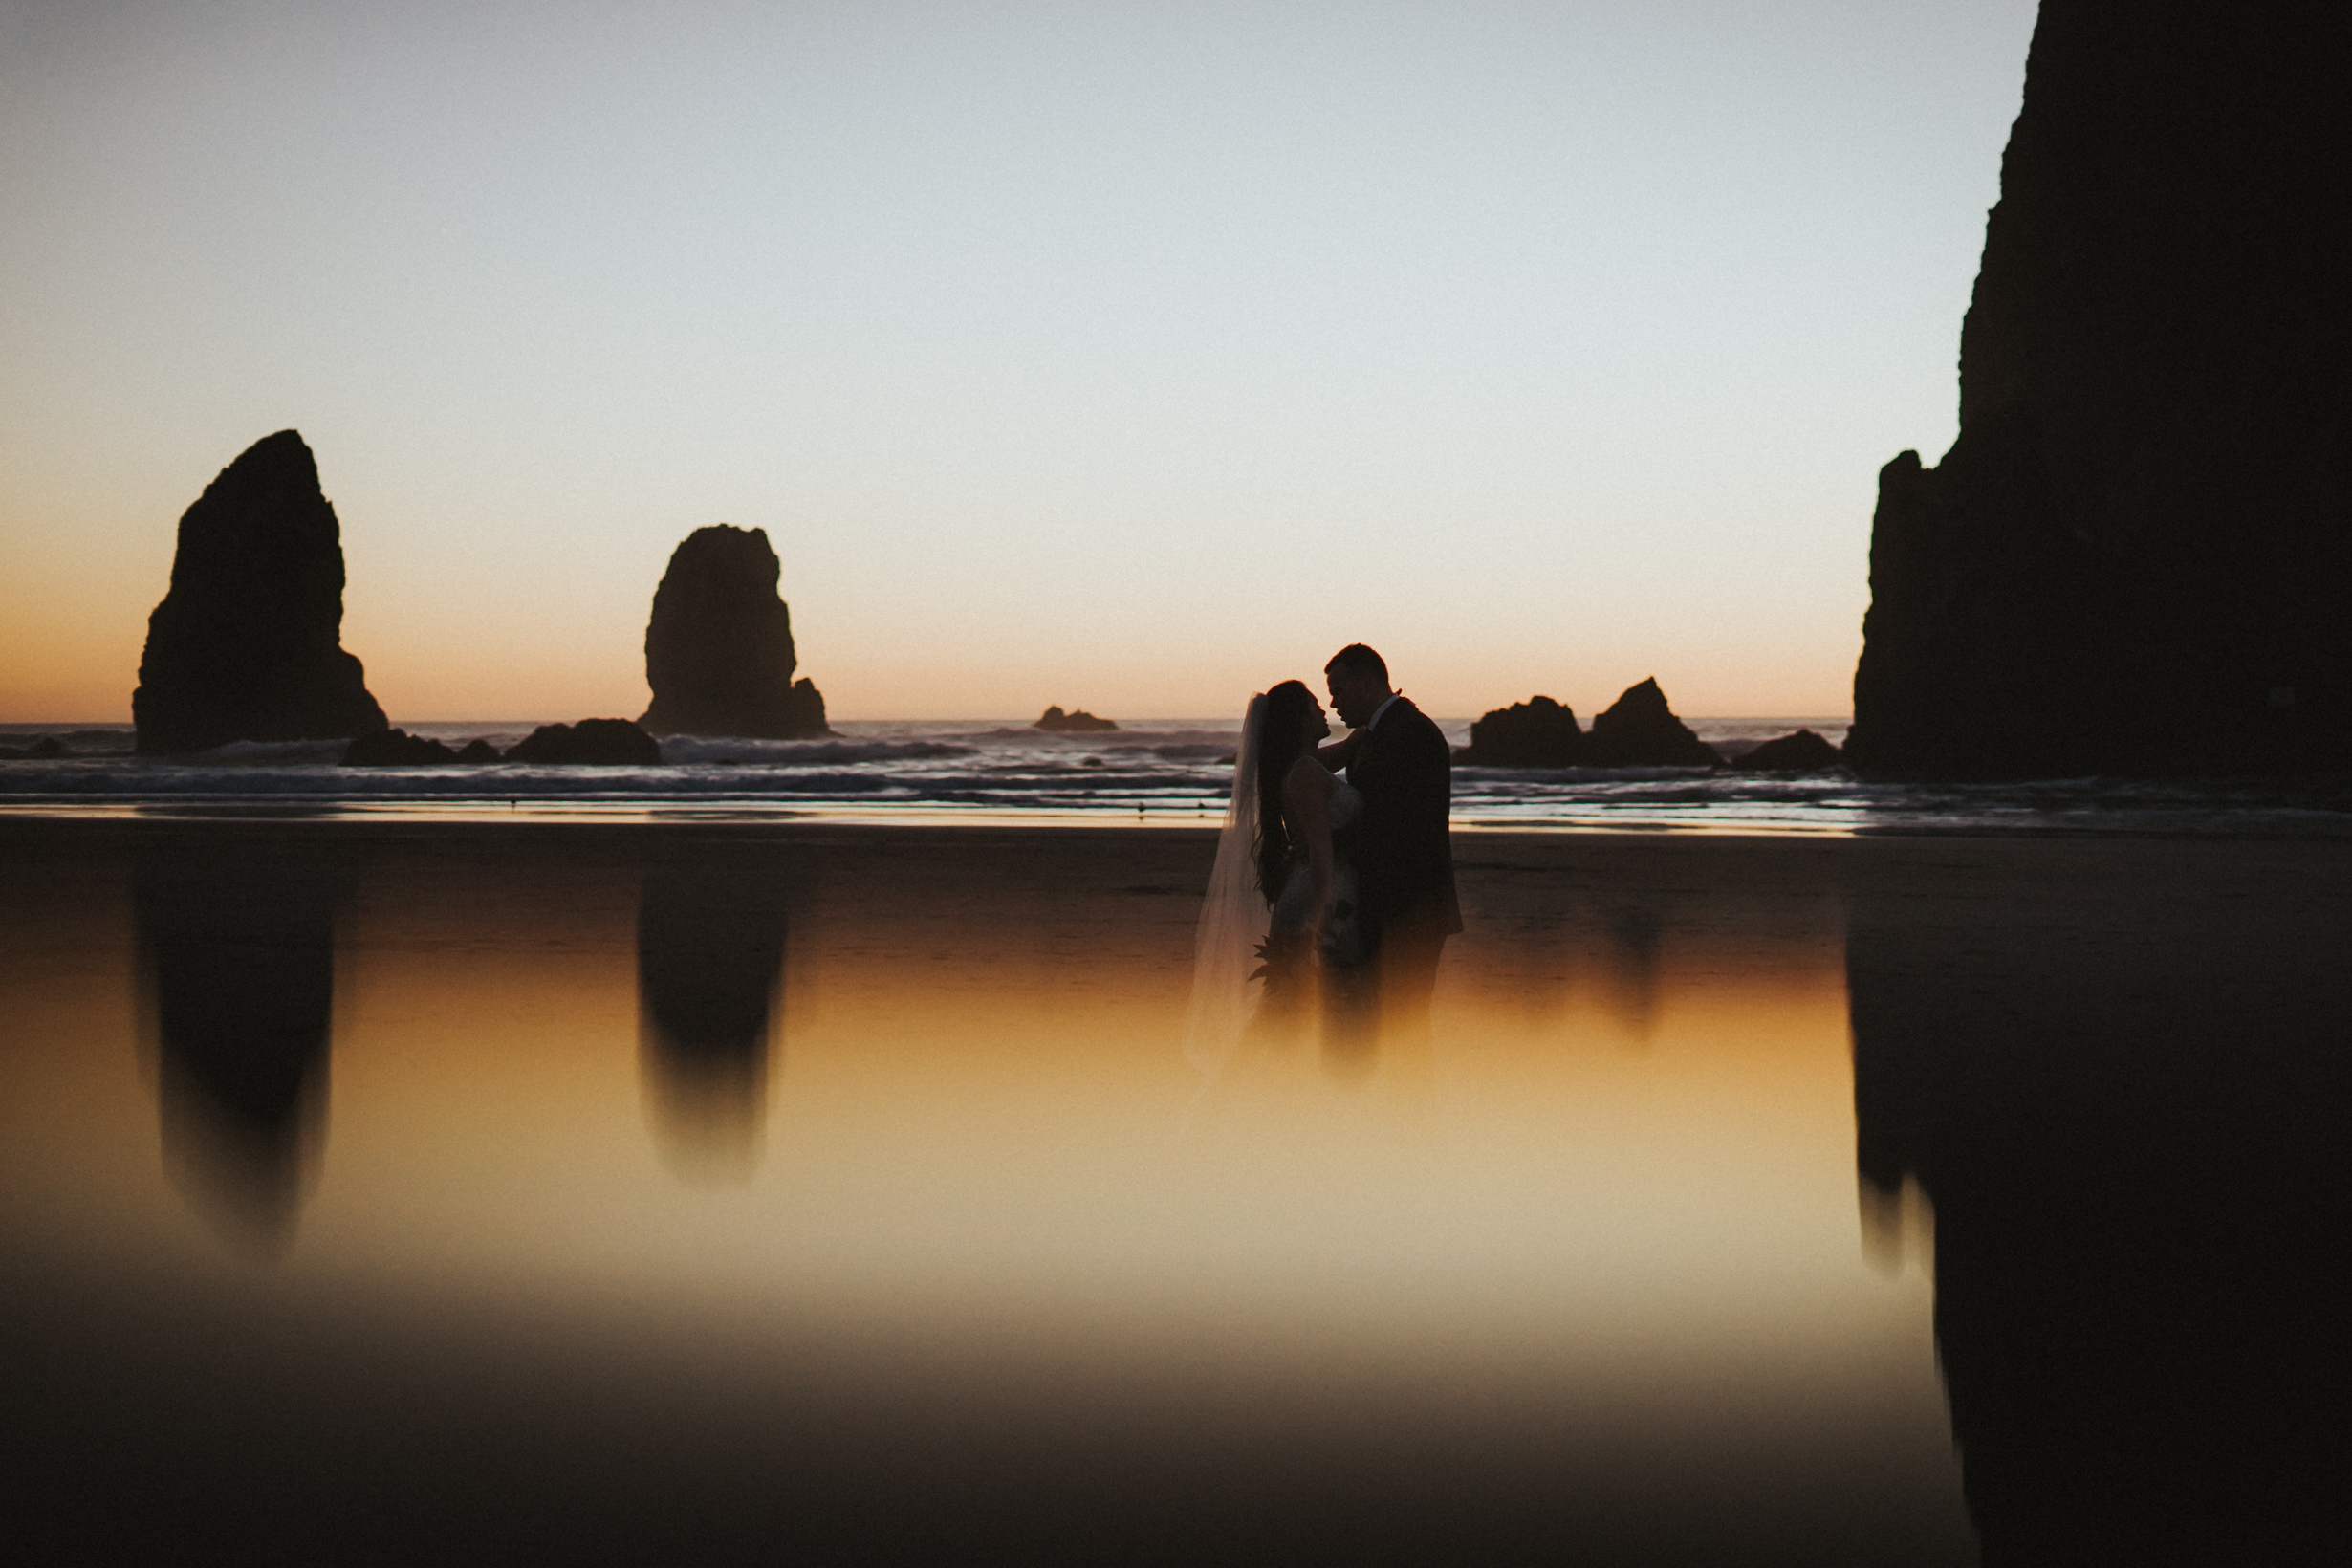 Cannon_Beach_wedding_portland_photography_alfred_tang_Photographer-9.jpg